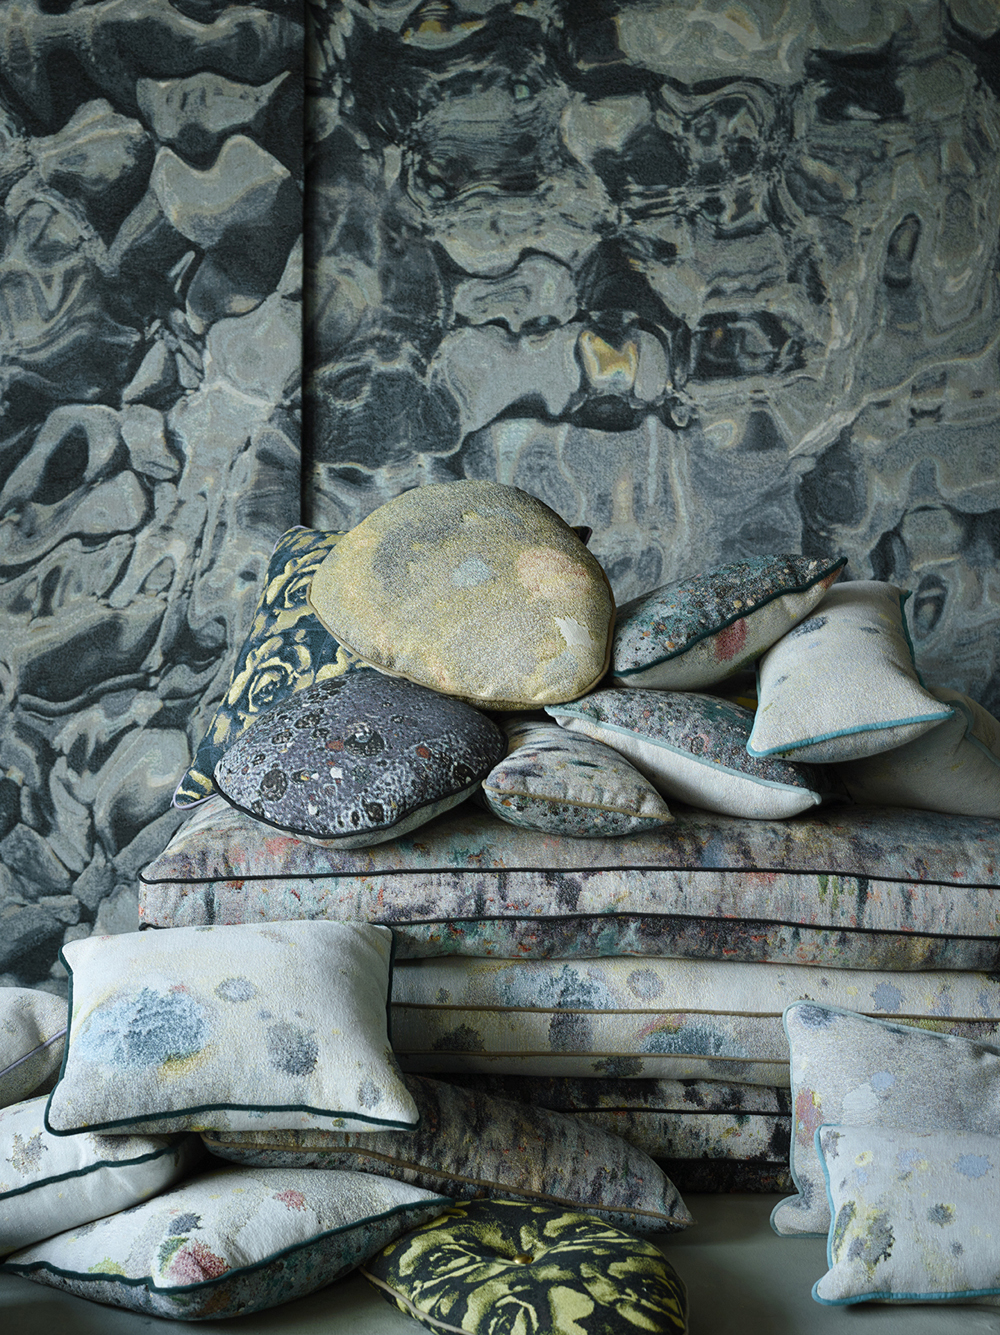 Cushions_RockPool_AccidentialExpressionist_MartynThompsonStudio27_JessTully_med.jpg